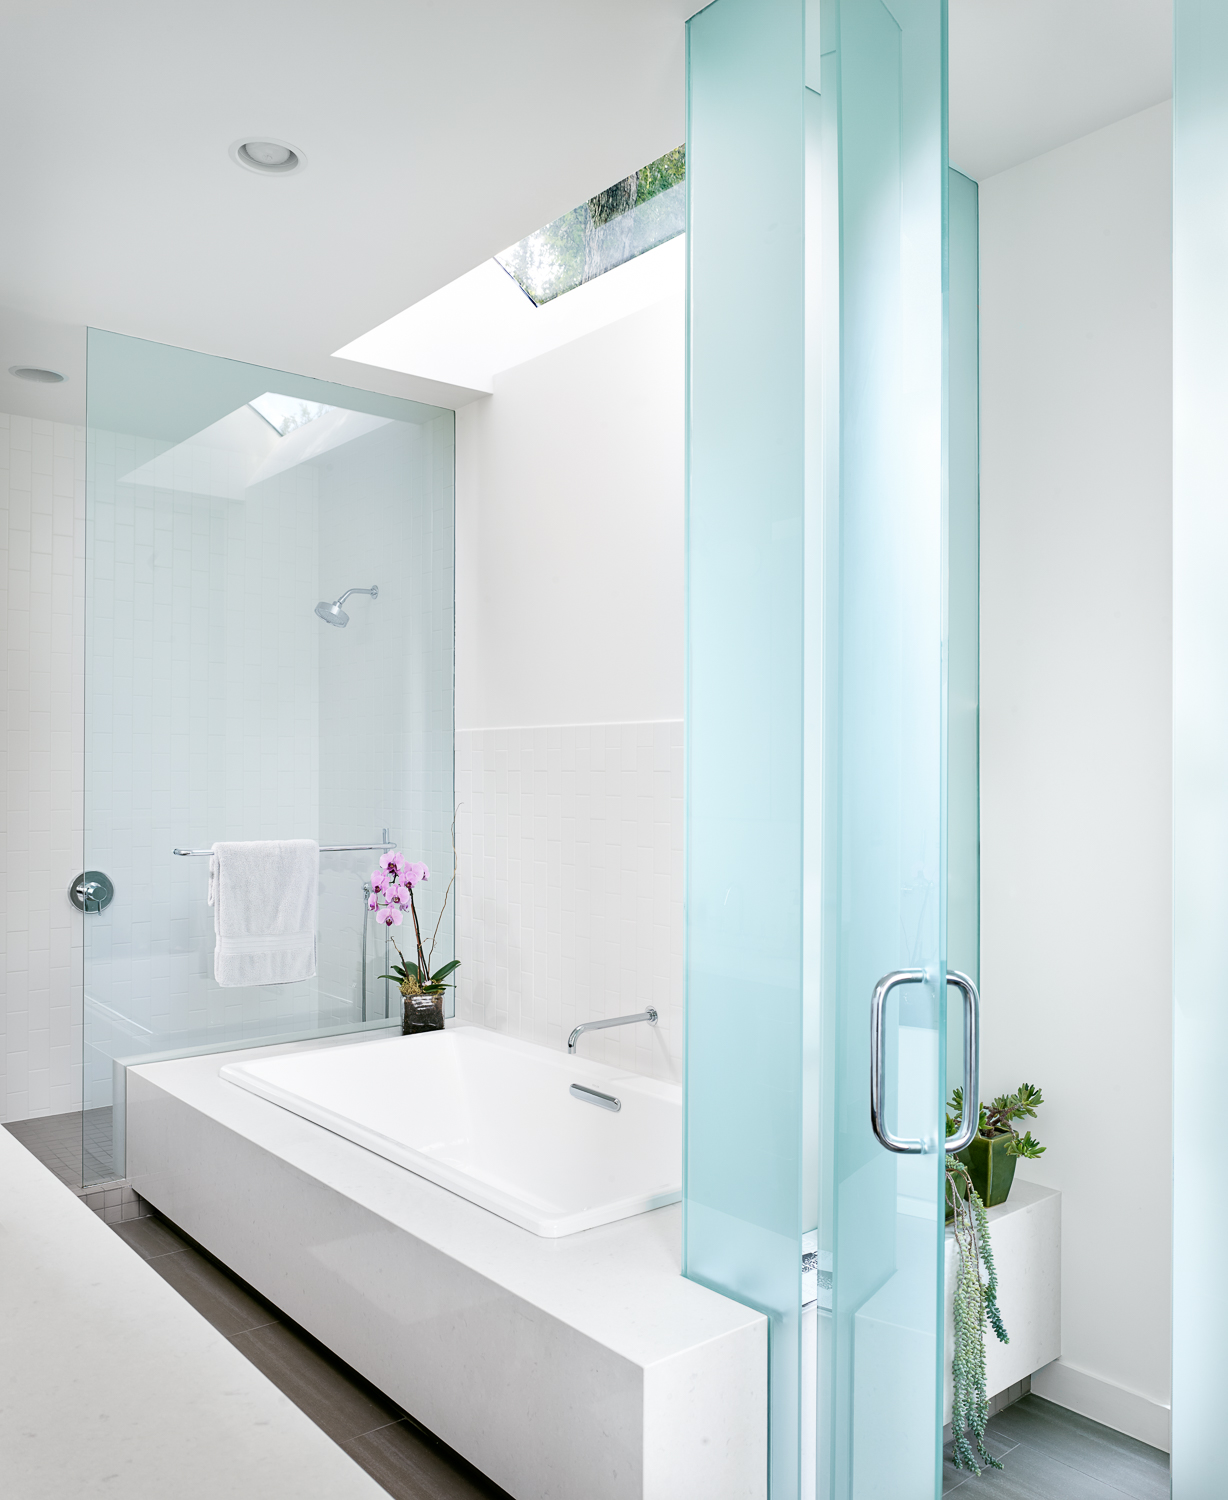 Master bath provides openness yet privacy.